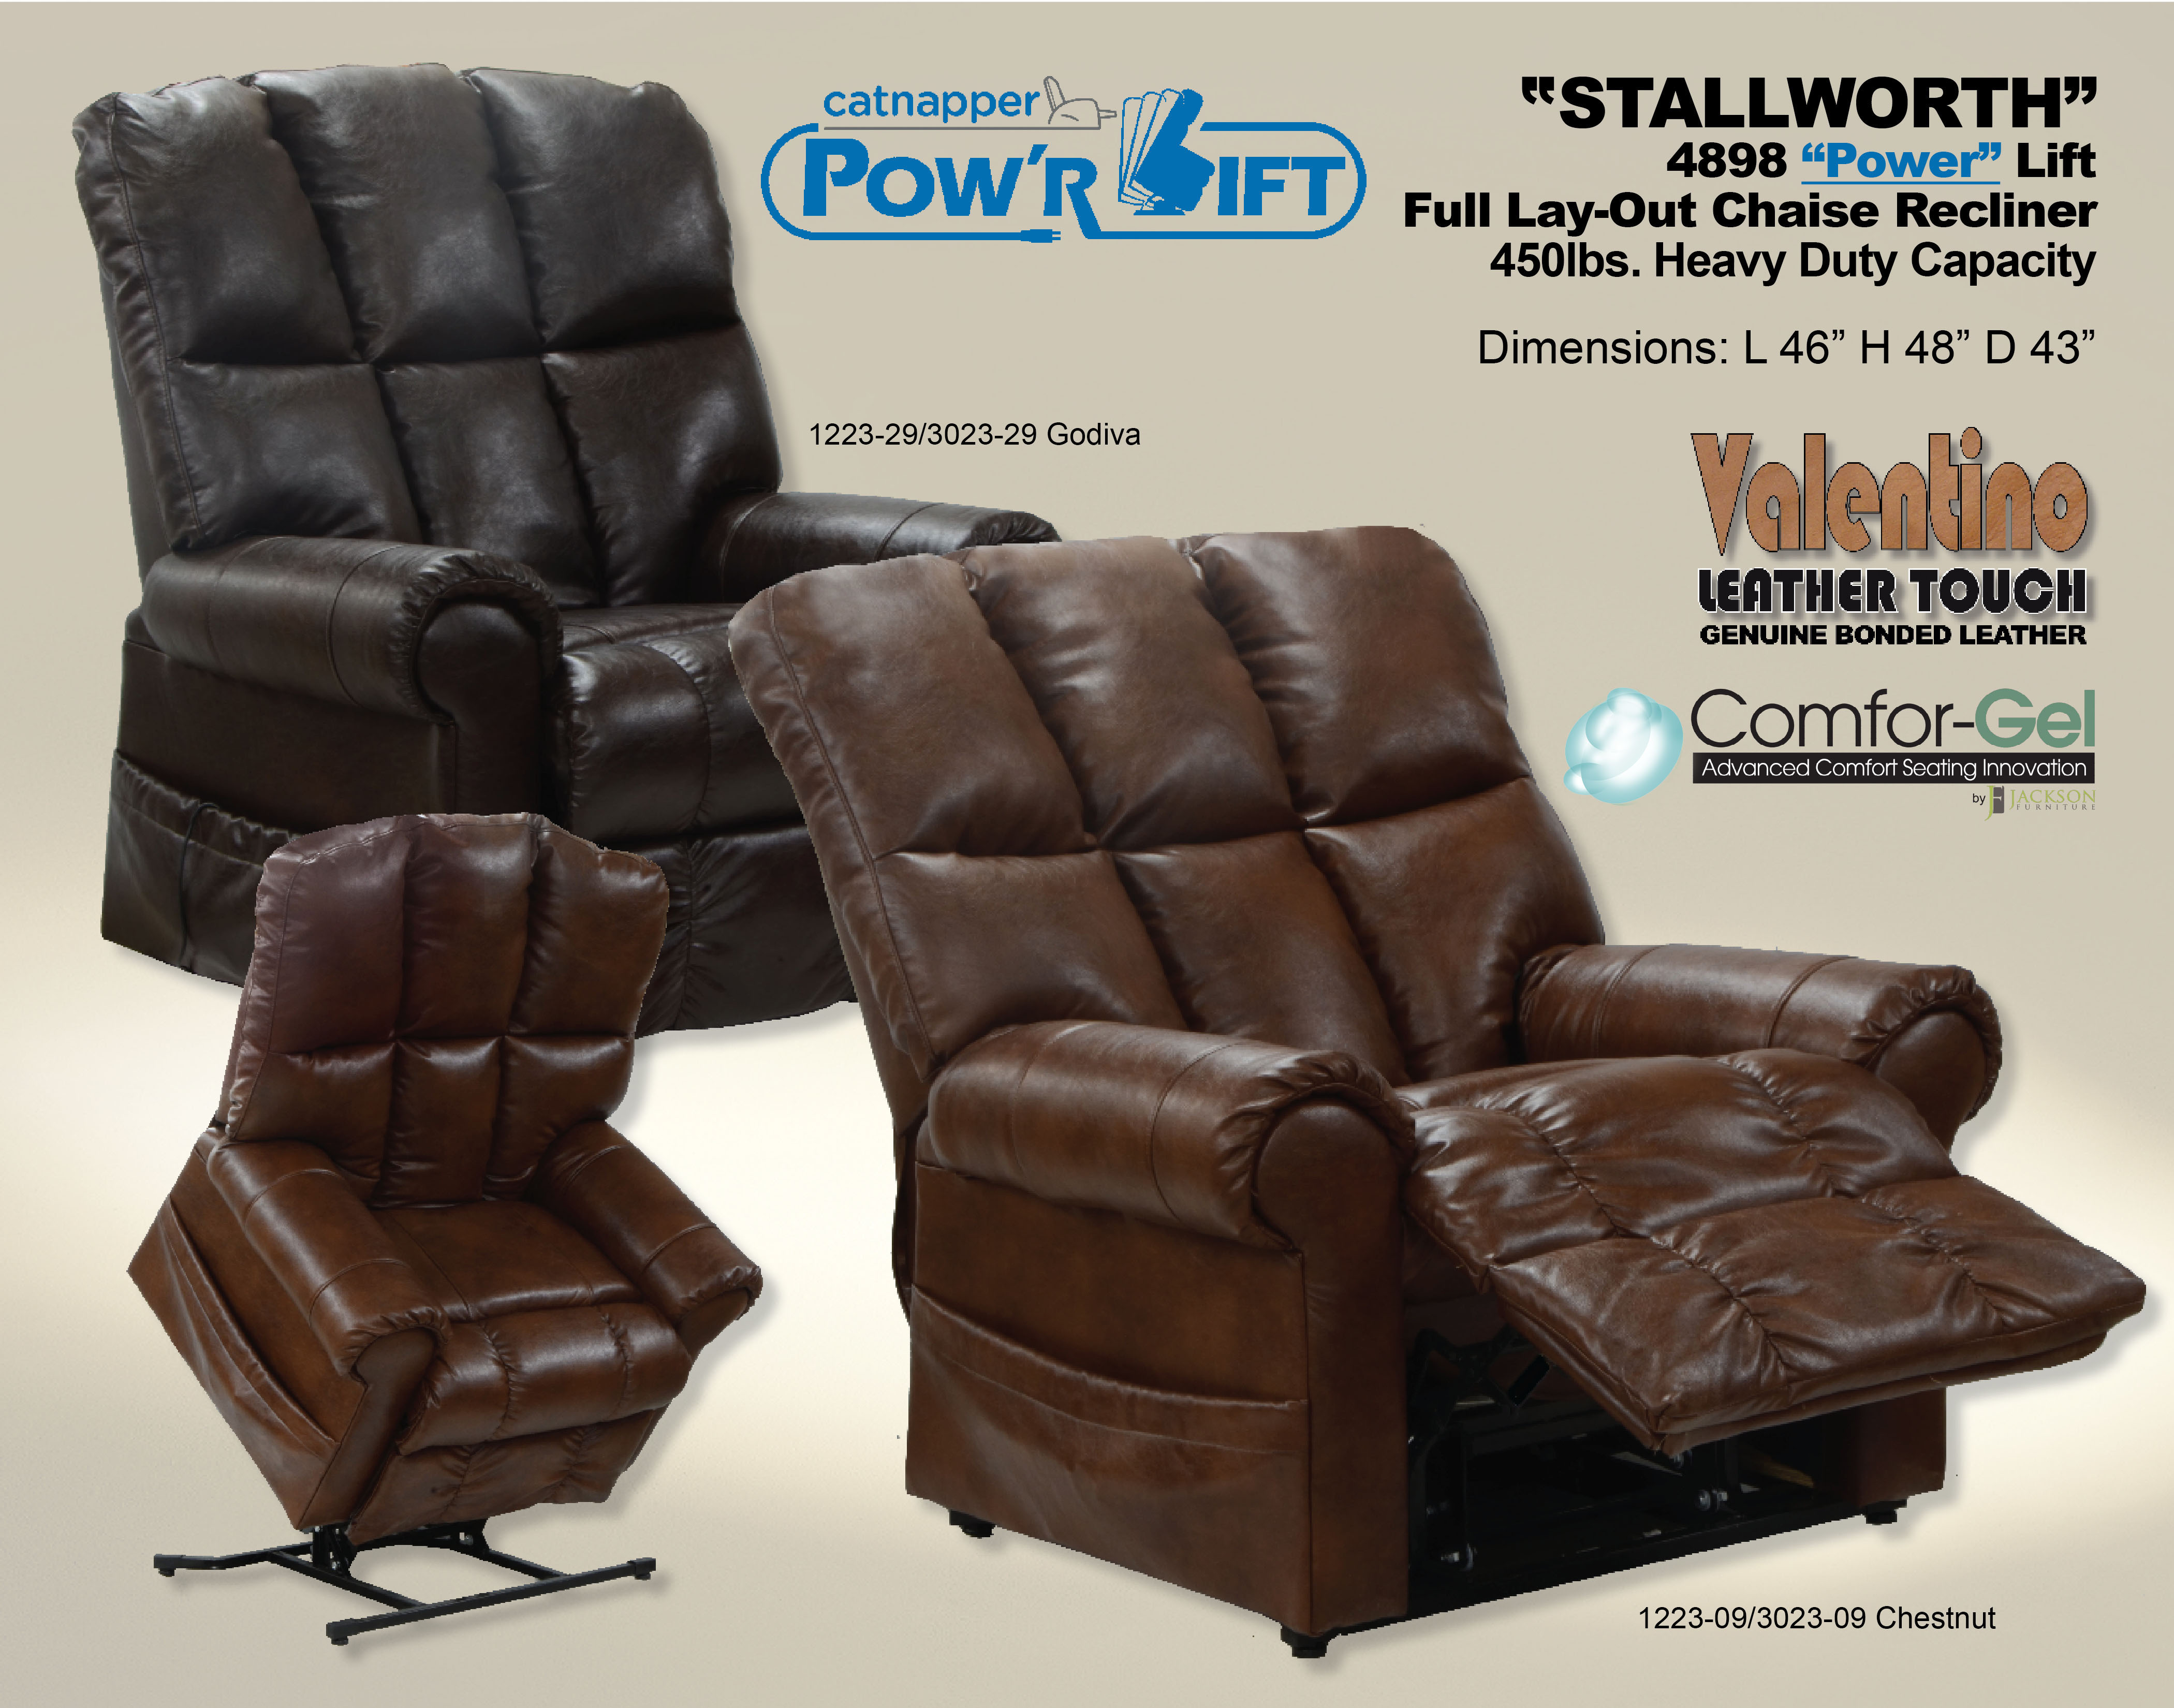 Catnapper Lift Recliner Stallworth 4898 Home Furniture